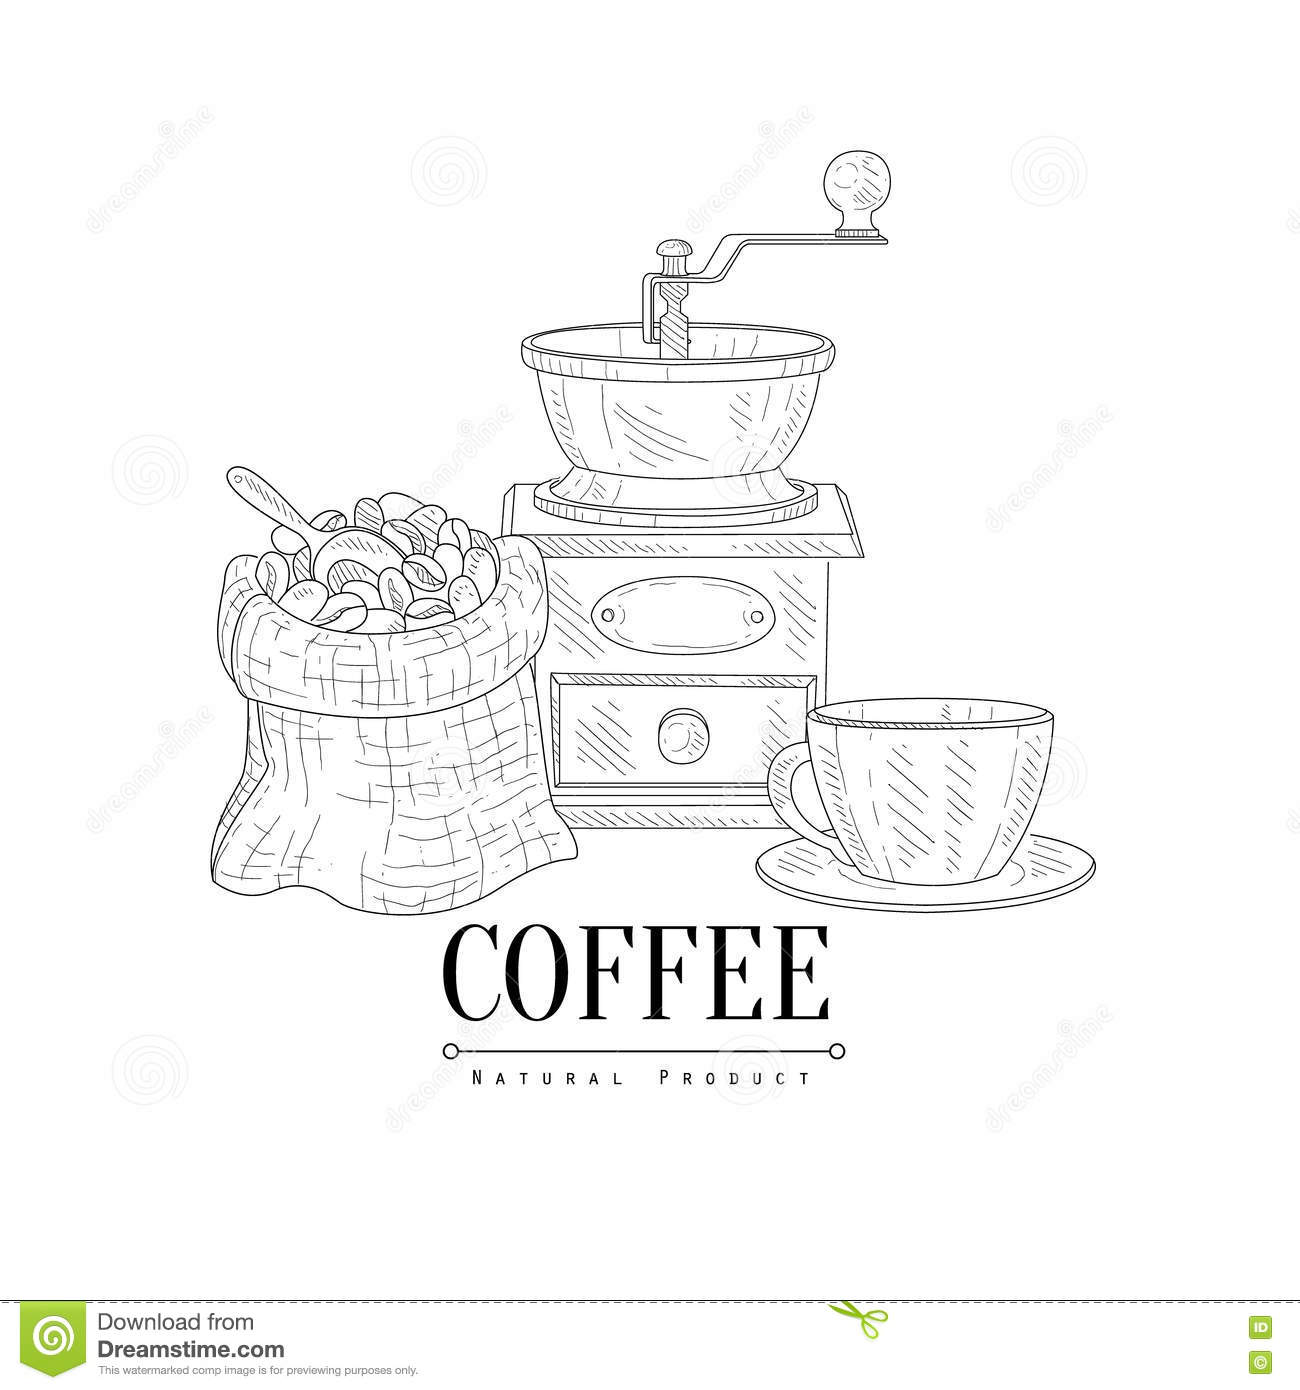 Hand Drawn Coffee Grinder Royalty-Free Stock Photo